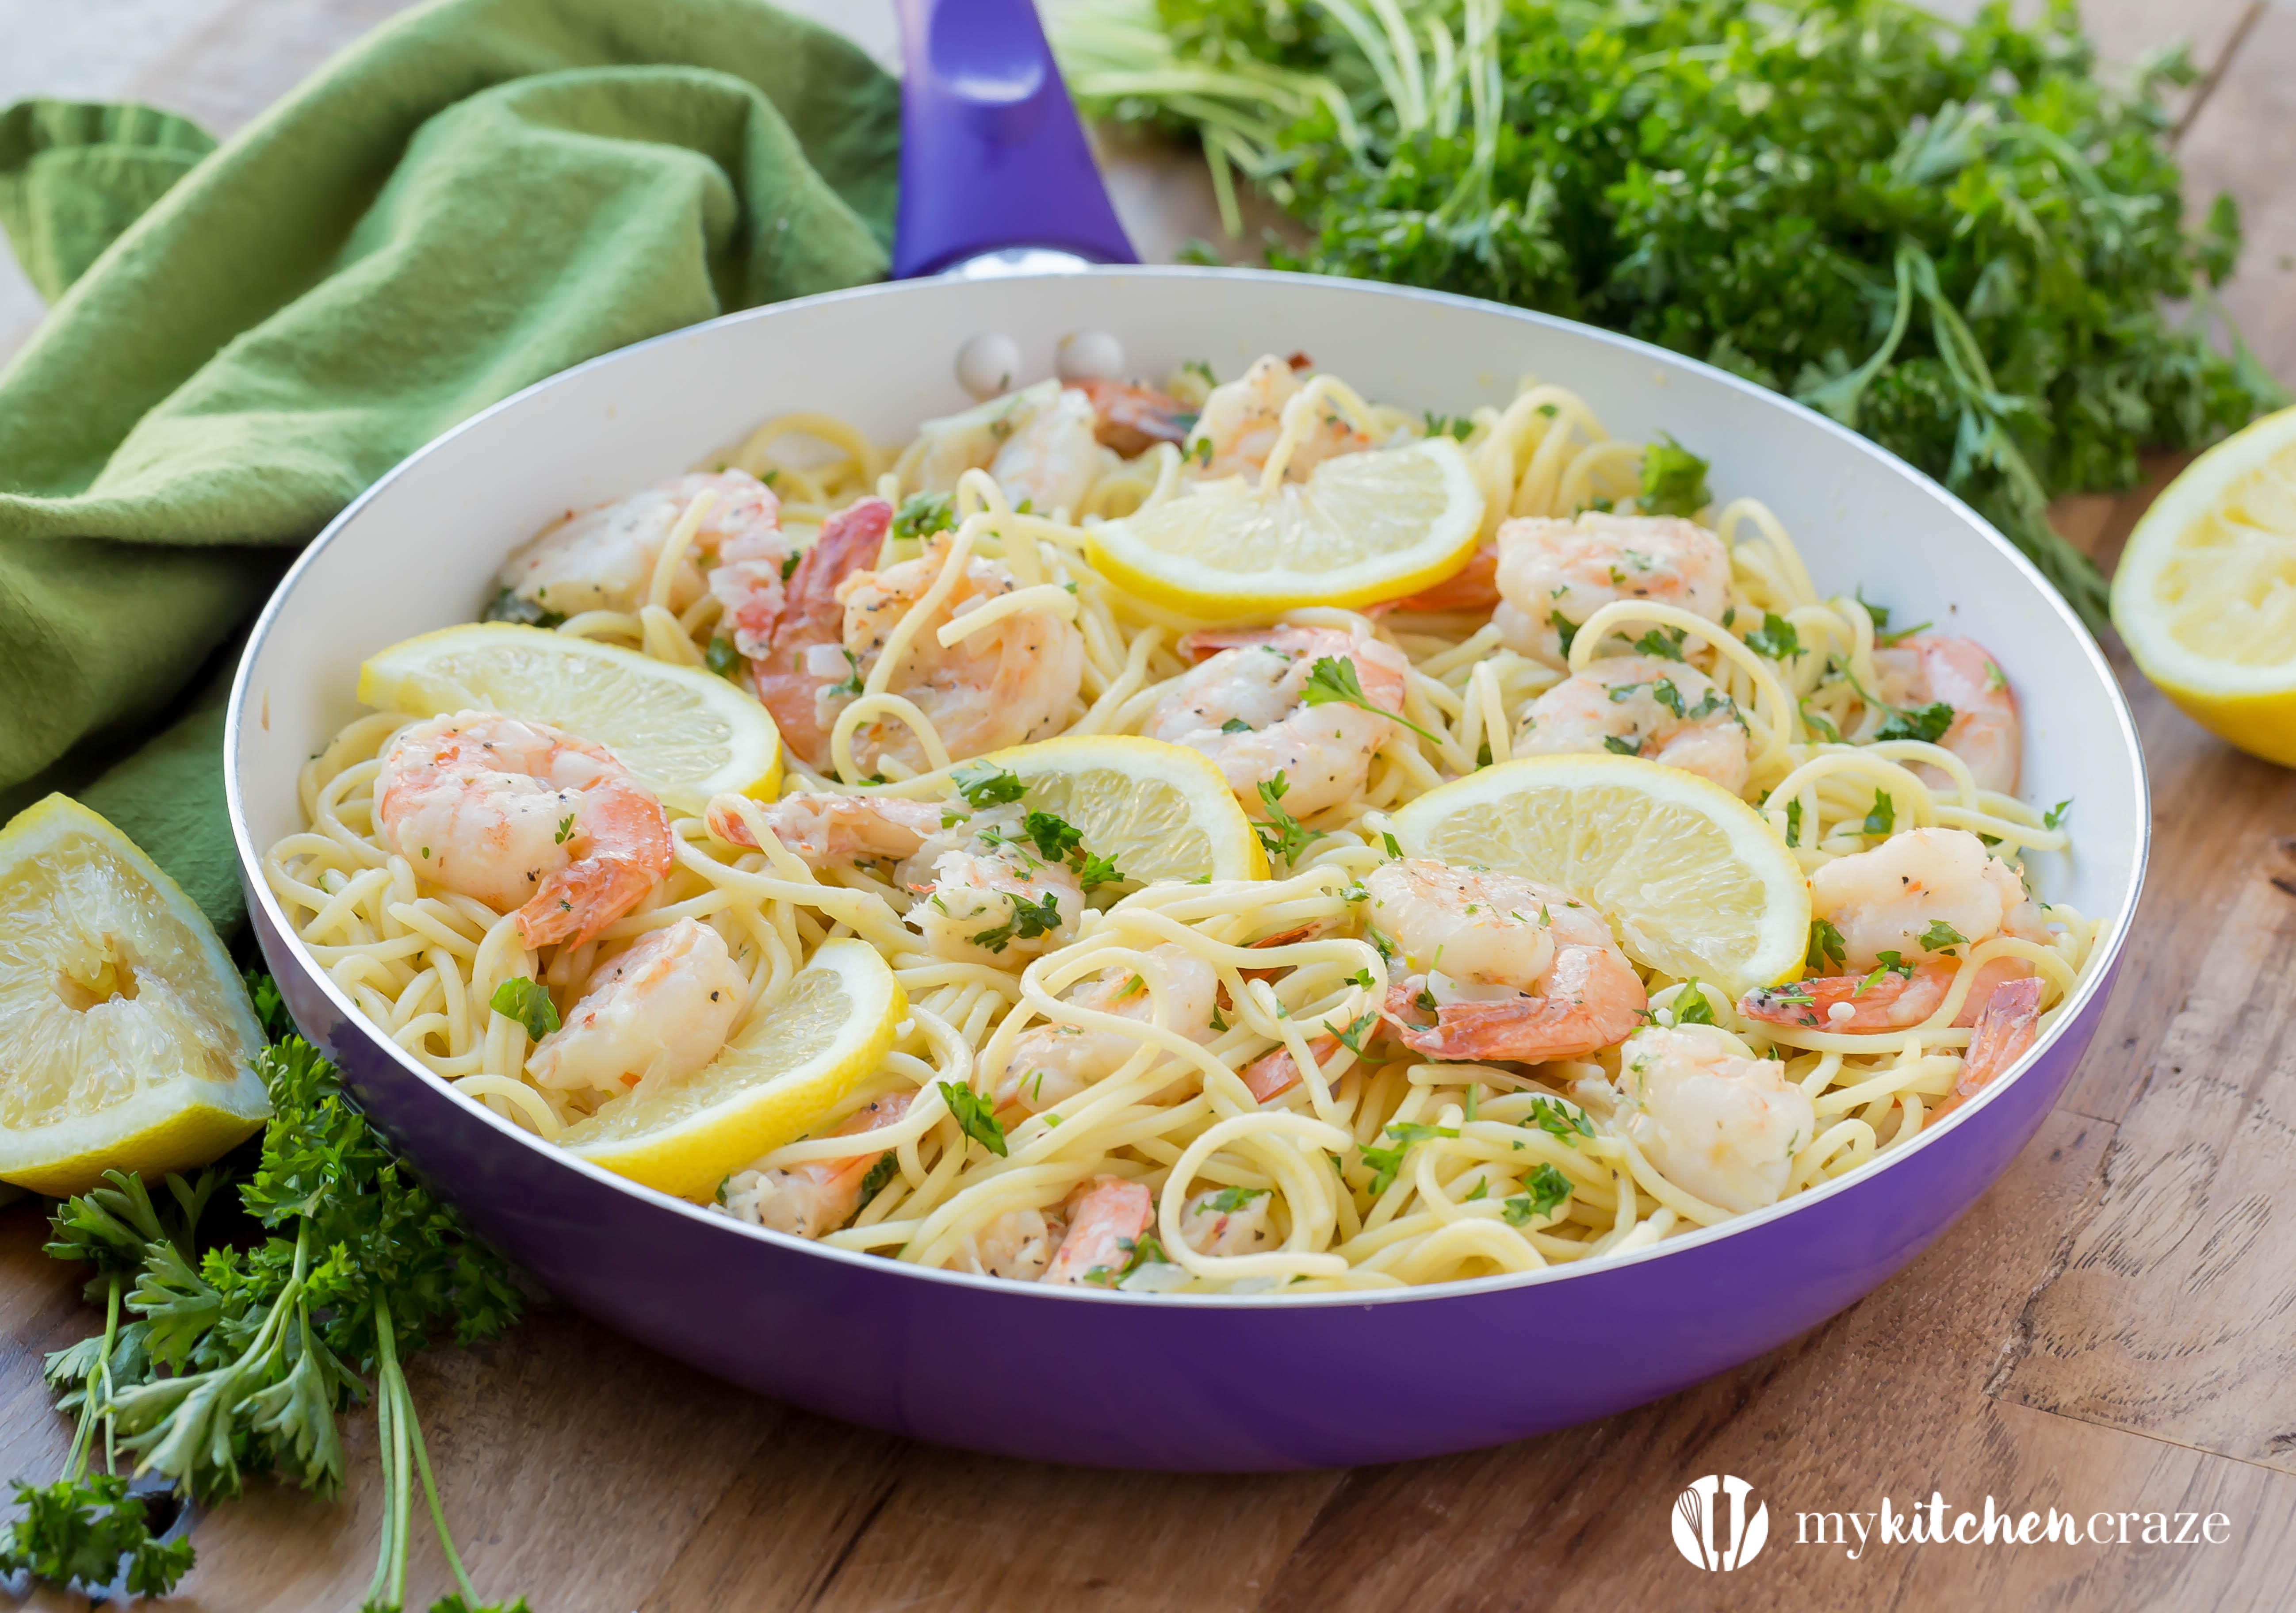 30 Minute Shrimp Scampi is fast becoming a favorite in our house. With only 10 ingredients (which most are spices that you most likely will have in your pantry) and 30 minutes, you can have a fresh and delicious meal on your dinner table!